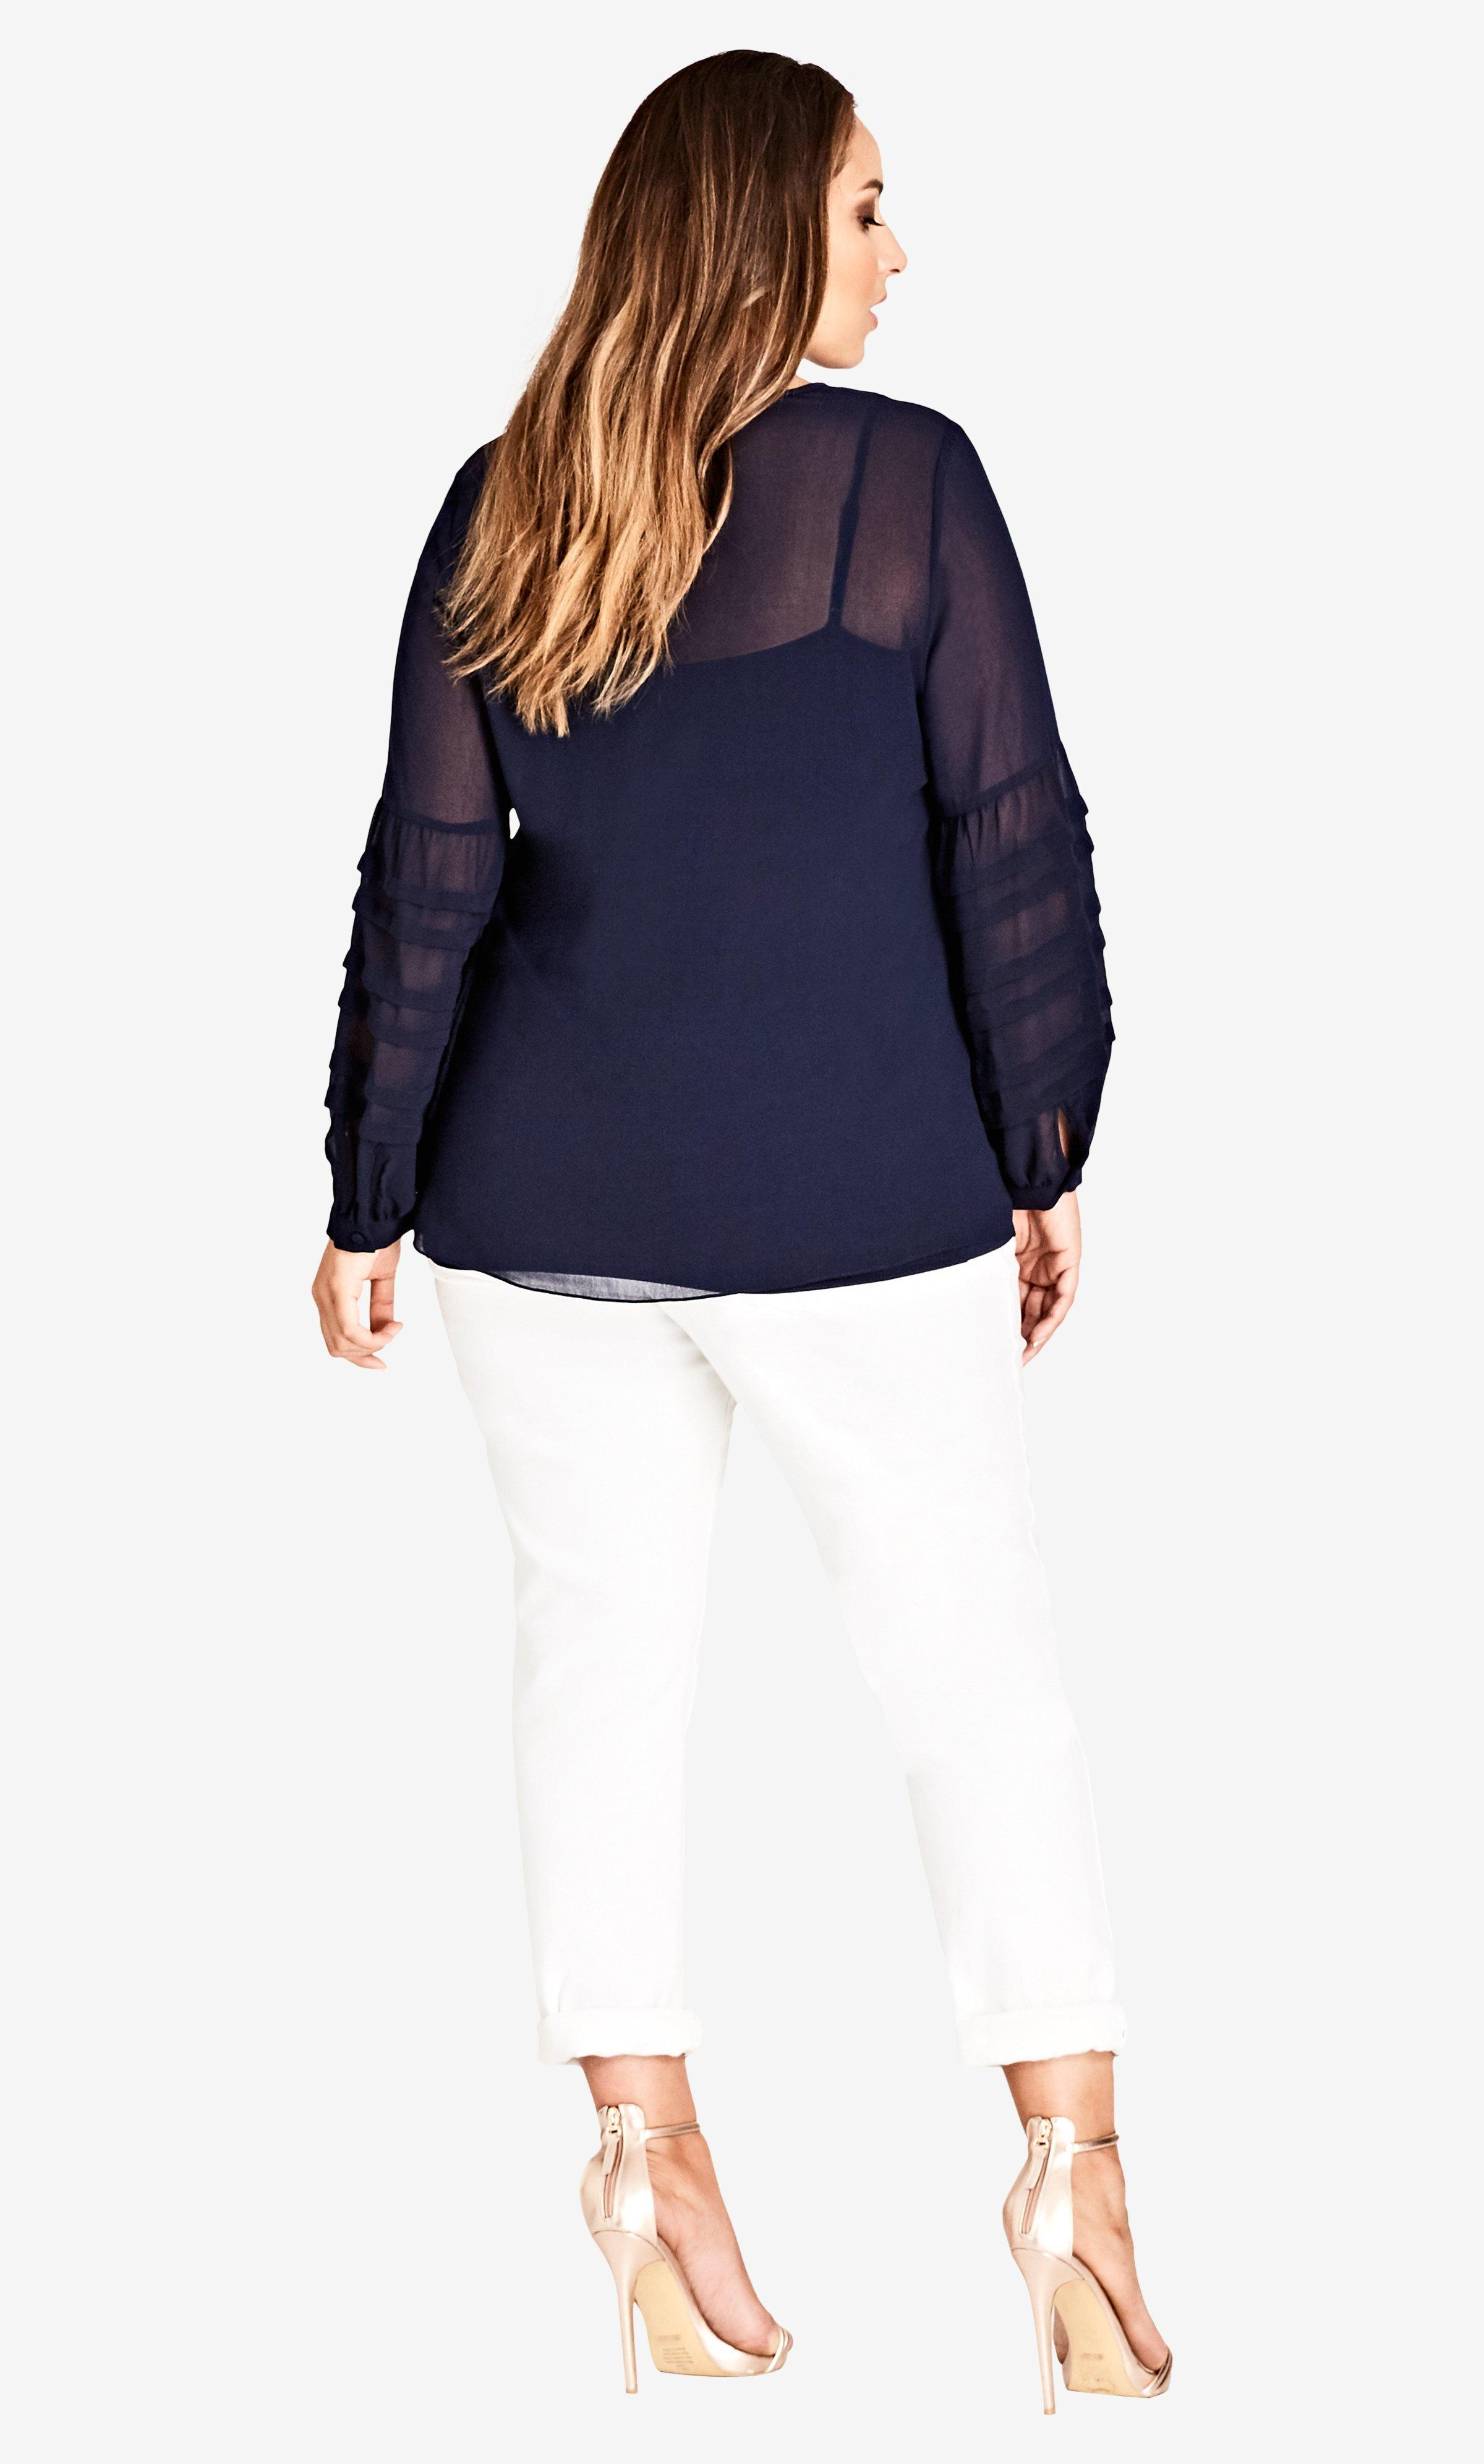 ba0a3e048d2 Lyst - City Chic Seraphina Top in Blue